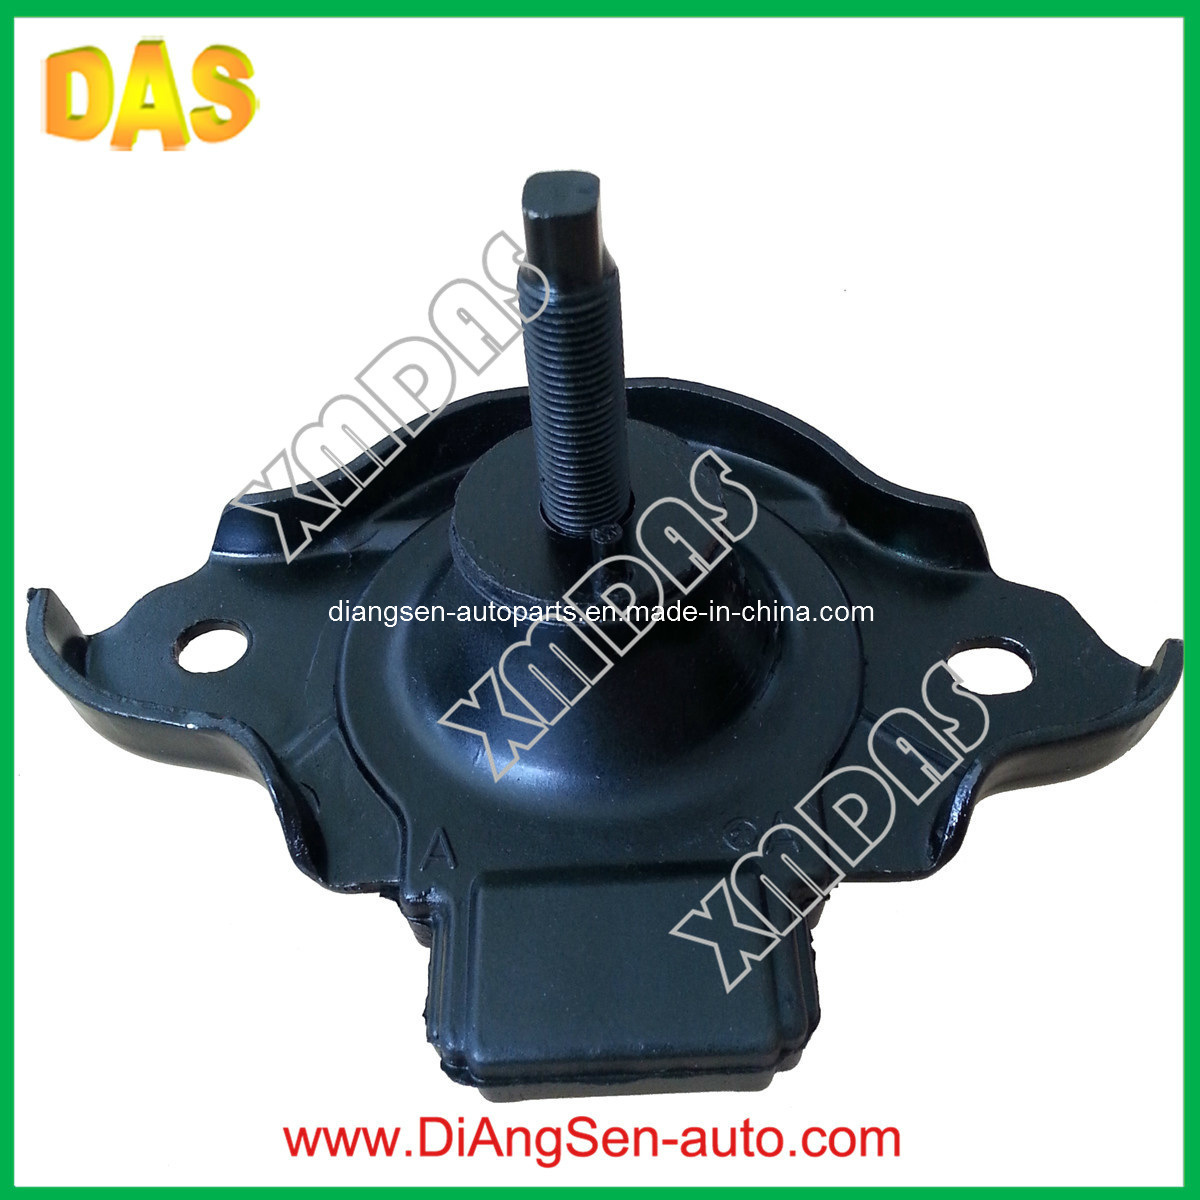 China Reliable Supplier Auto Parts Engine Mounting For Honda City 2011 Ridgeline Suspension Control Arm Front Left Lower W0133 Jazz 50821 Saa 013